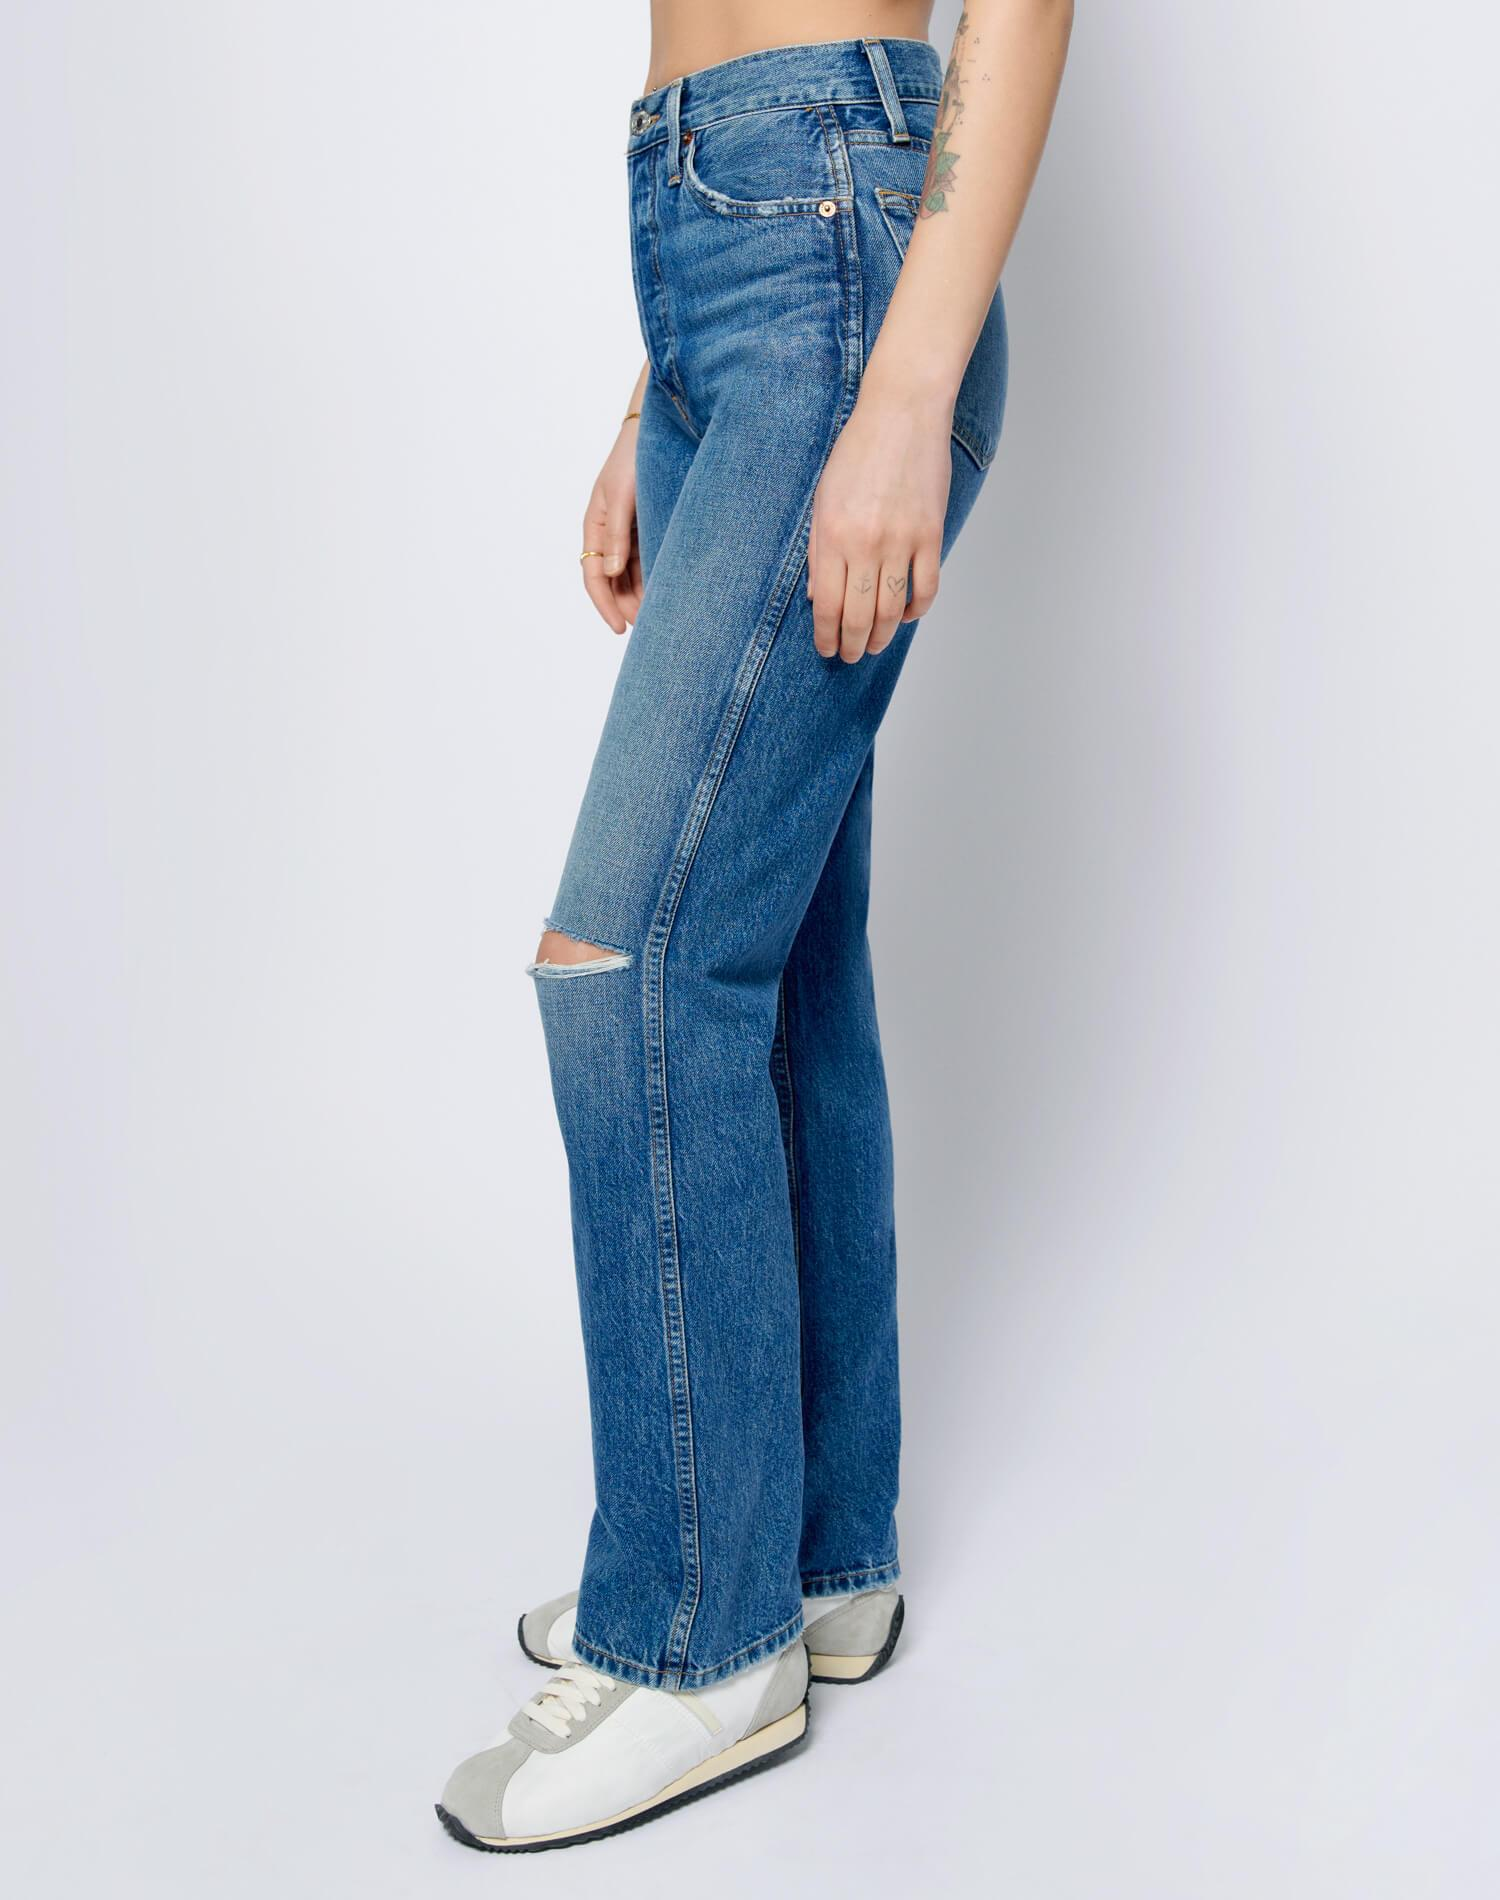 High Rise Loose - Washed Indigo with Rips 2